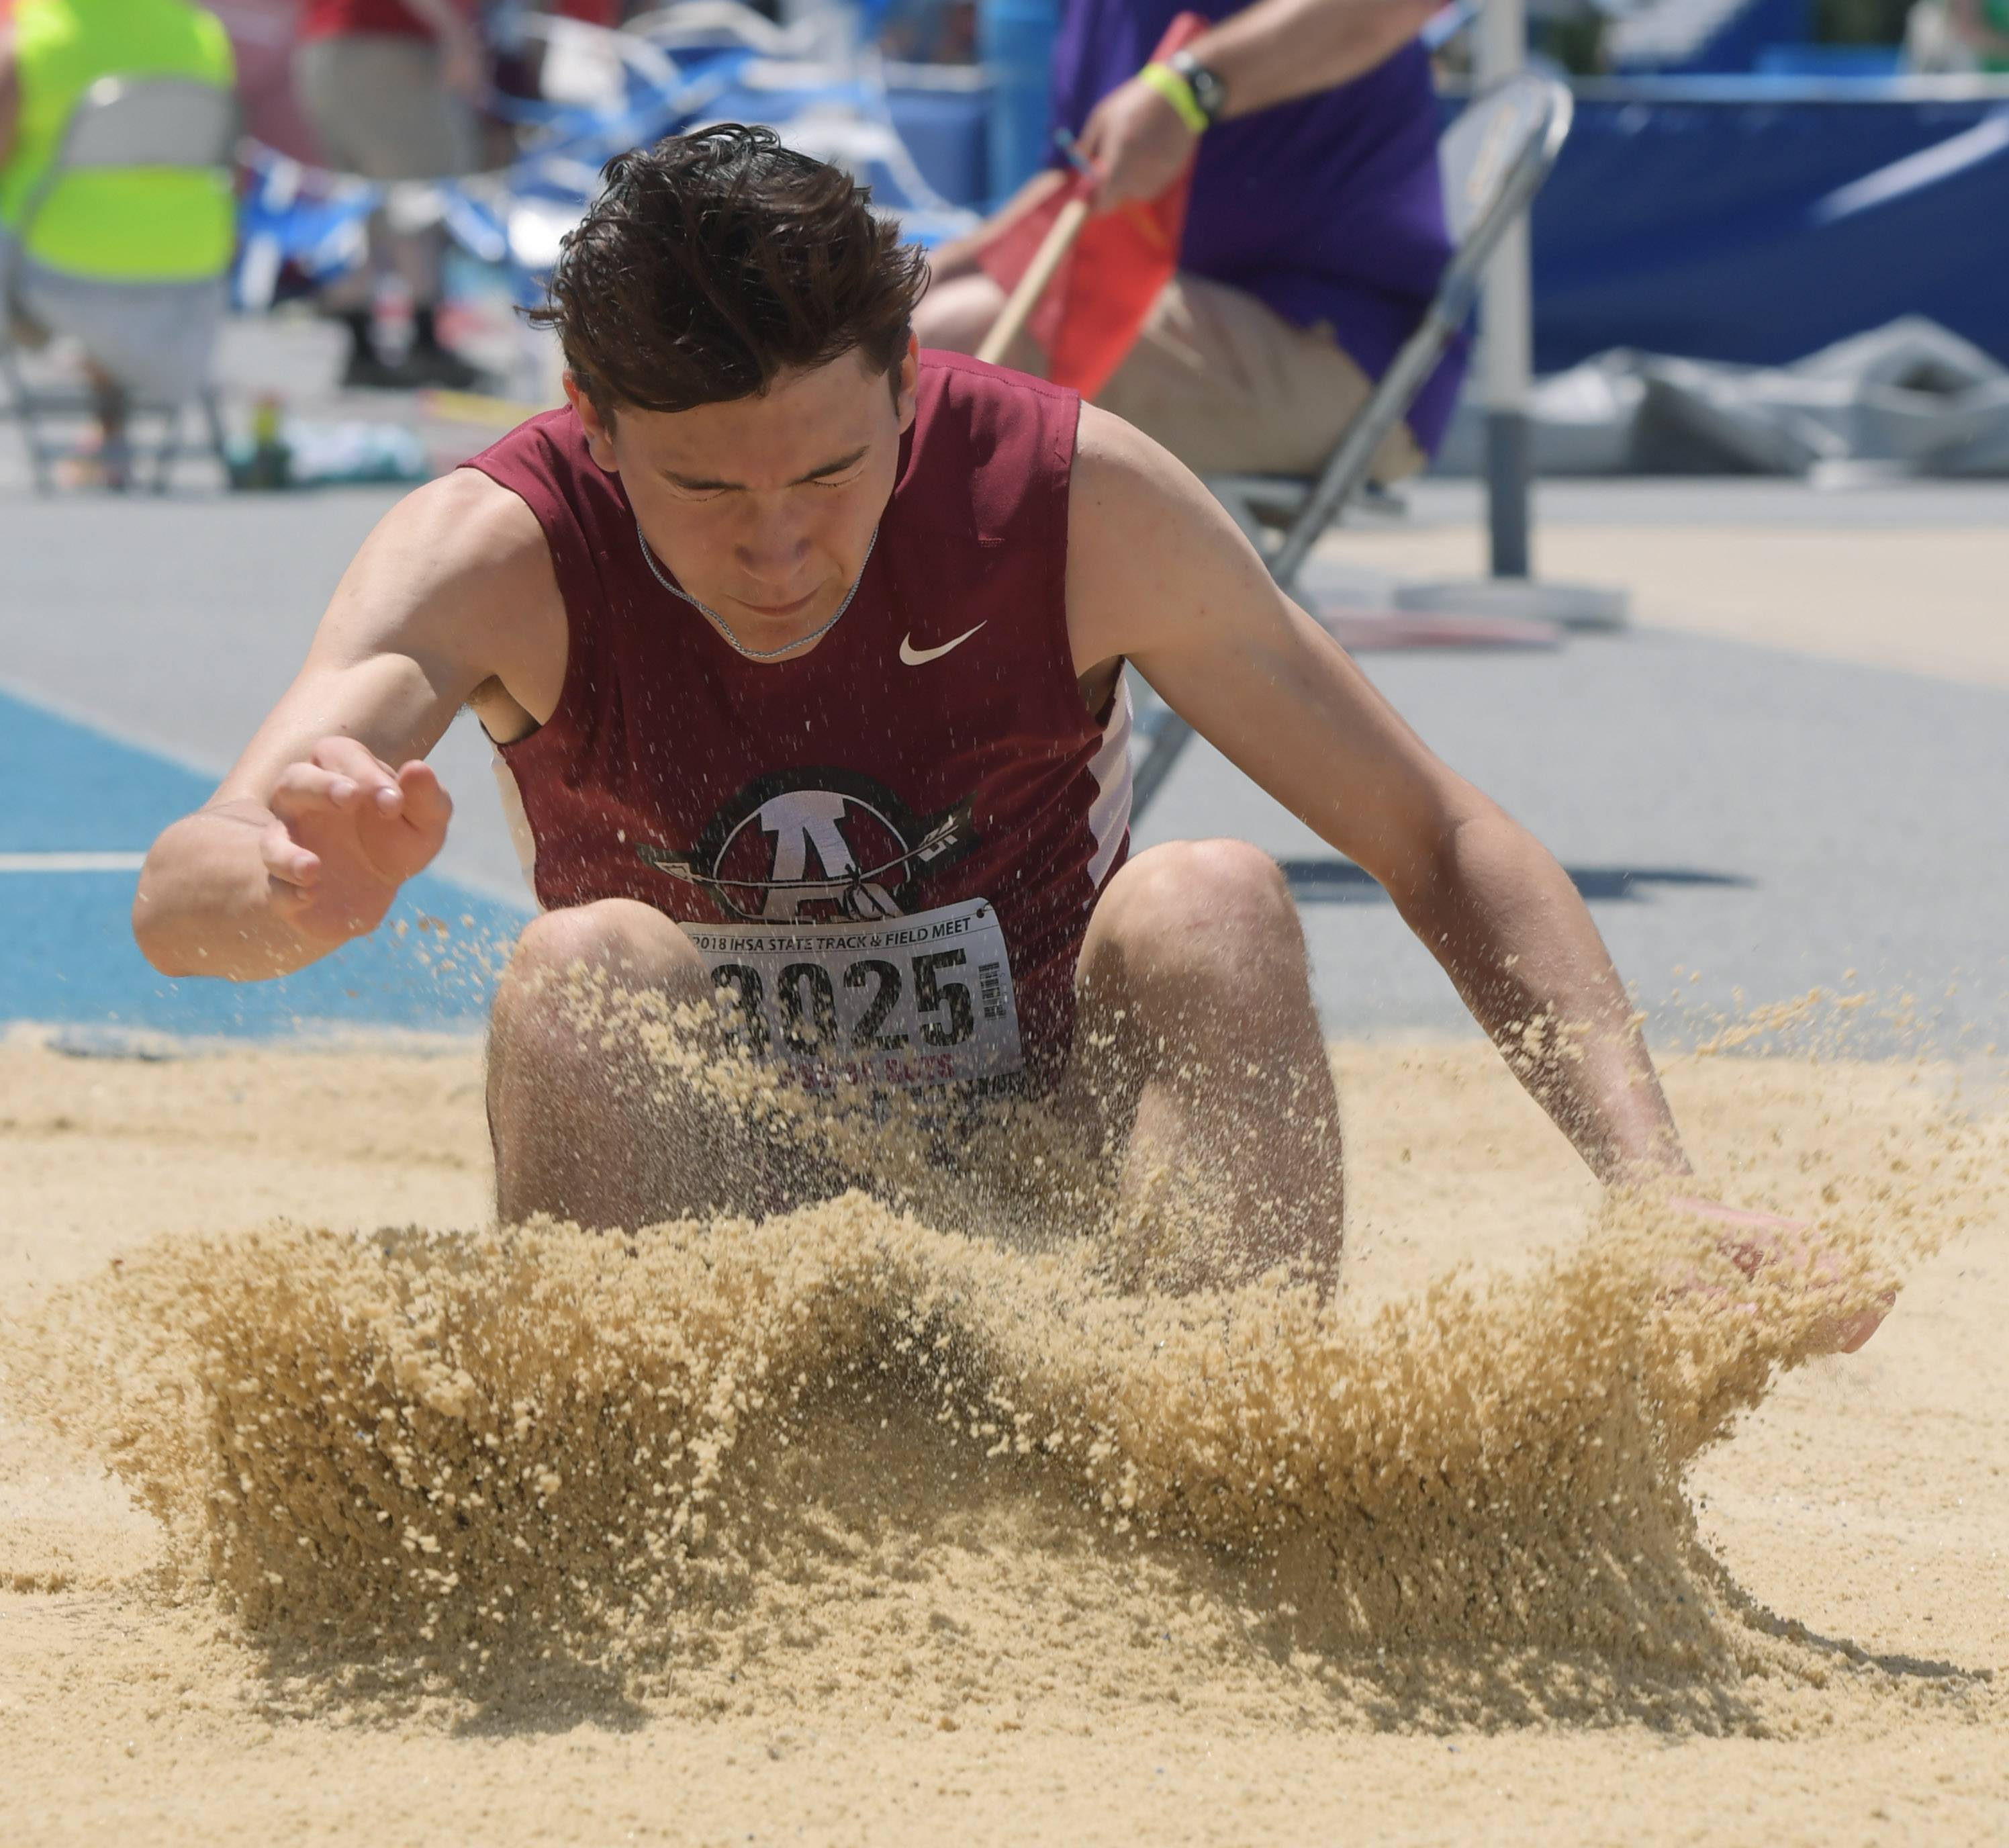 Antioch's Zach Grindley lands as he competes in the long jump during the Class 3A boys state track and field preliminaries in Charleston Friday.